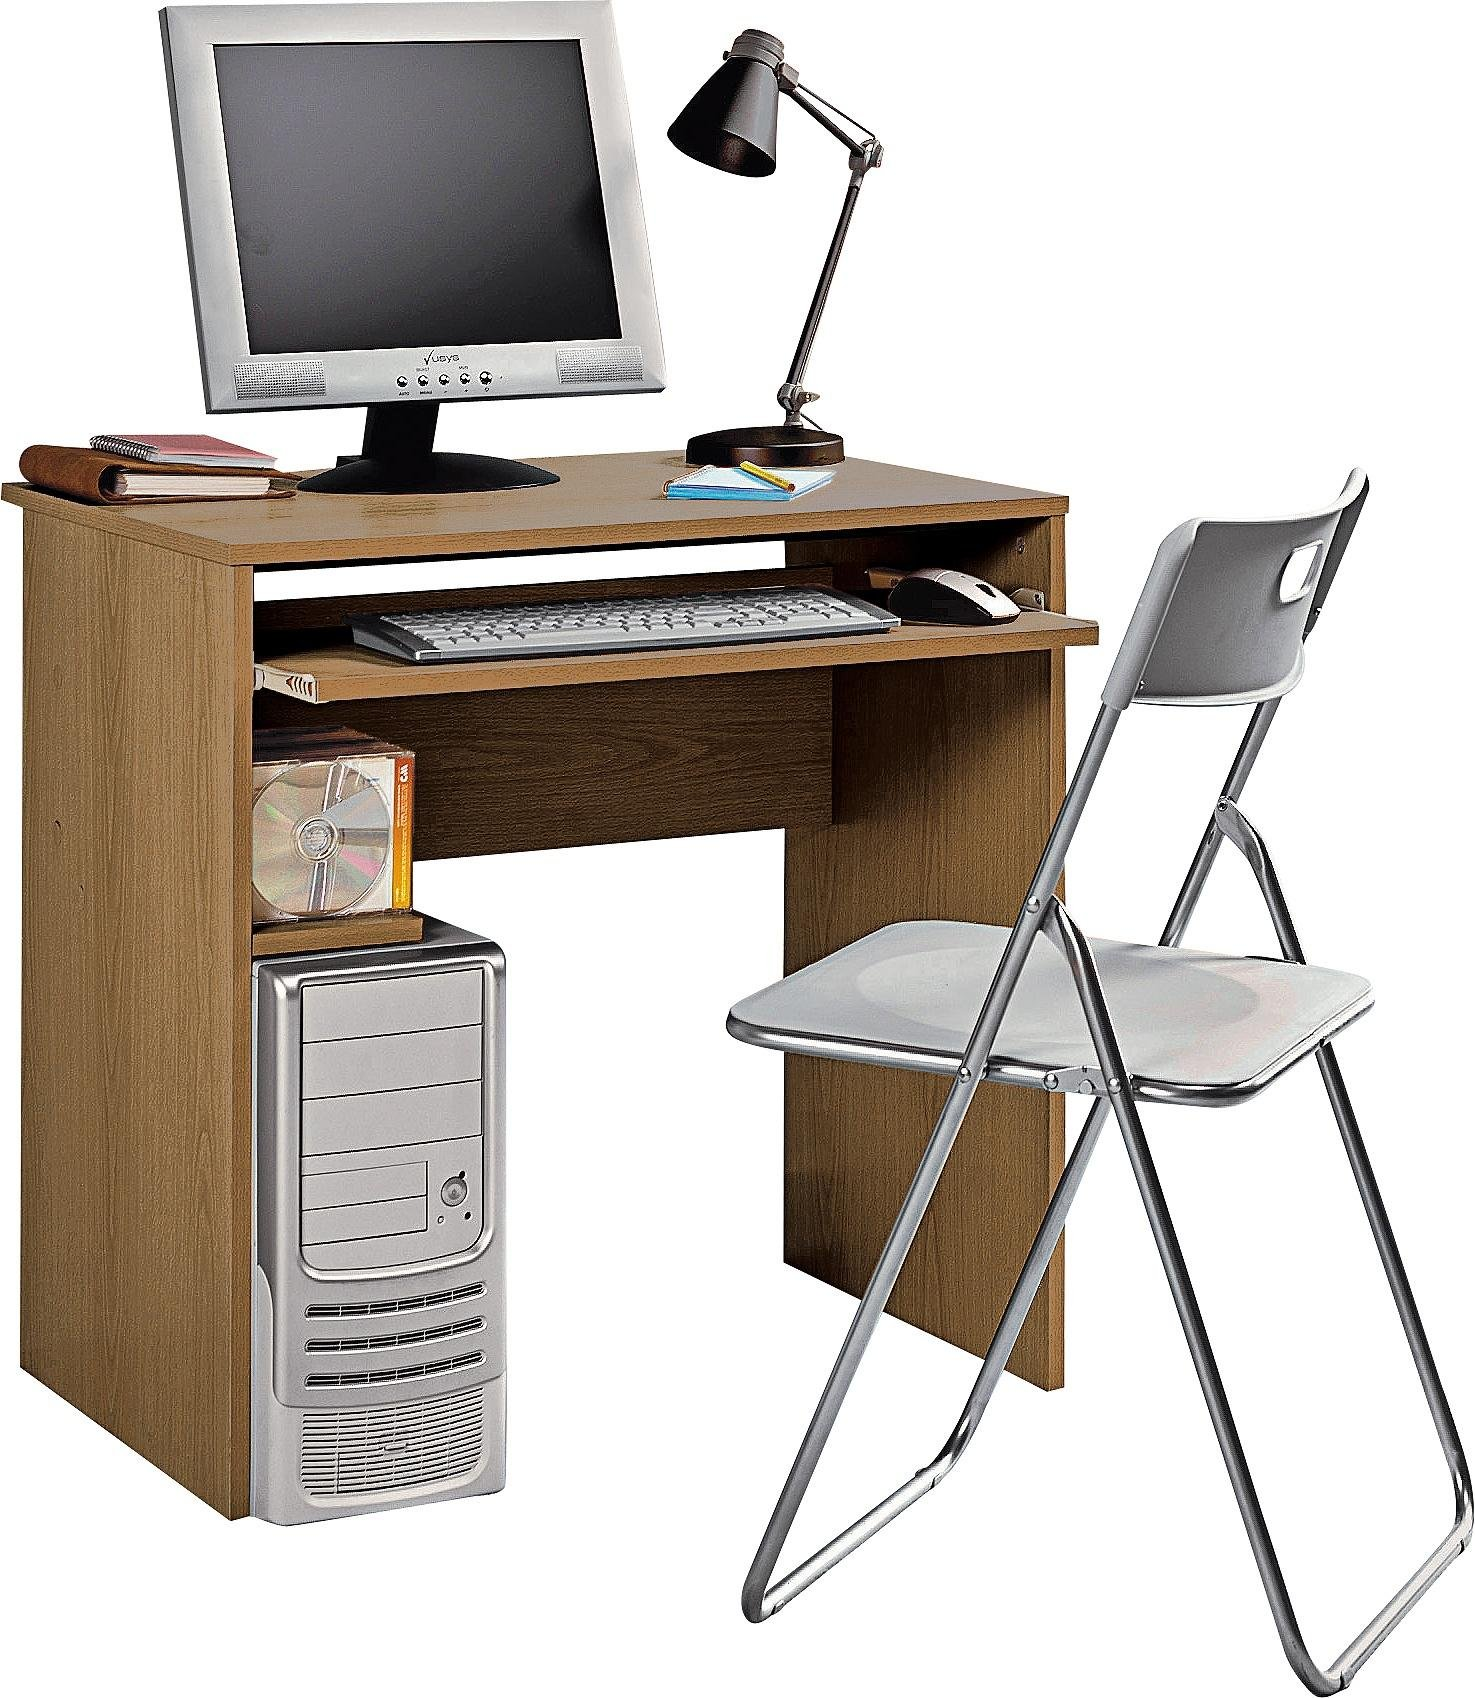 desk for home office. HOME Office Desk And Chair Set - Oak Effect For Home